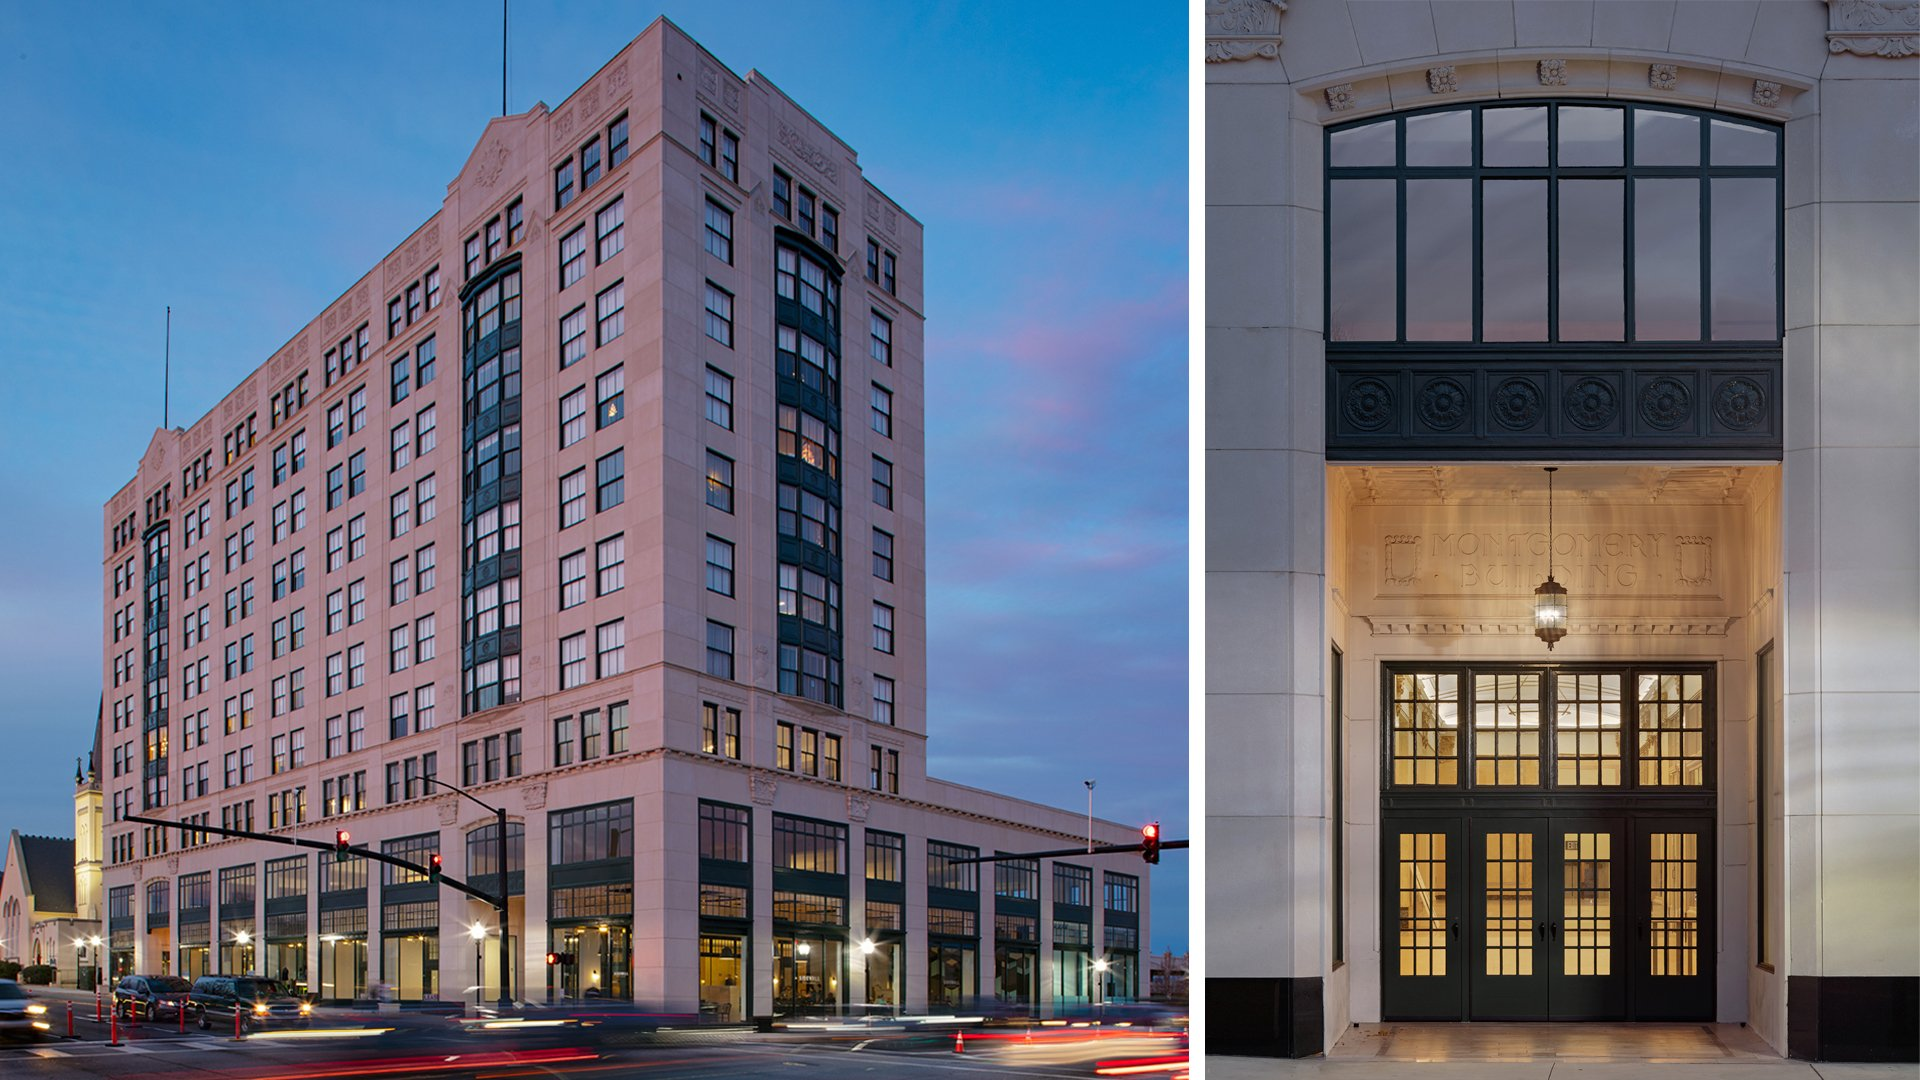 Montgomery Building in Spartanburg Honored with Preservation Award